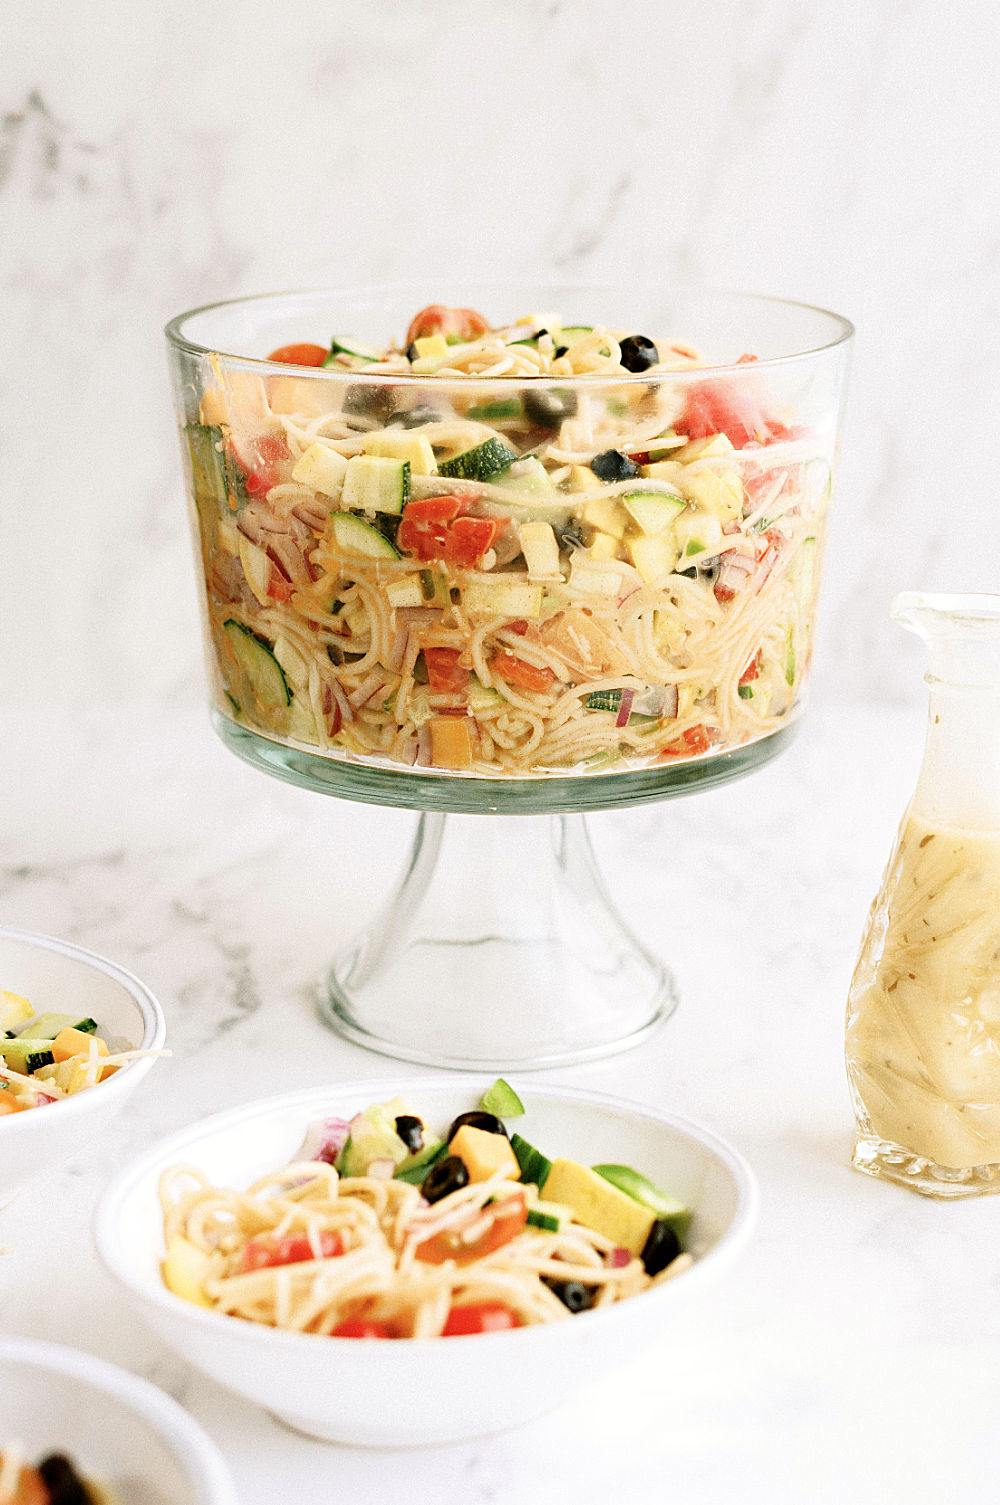 spaghetti pasta salad ready to serve in glass serving bowl